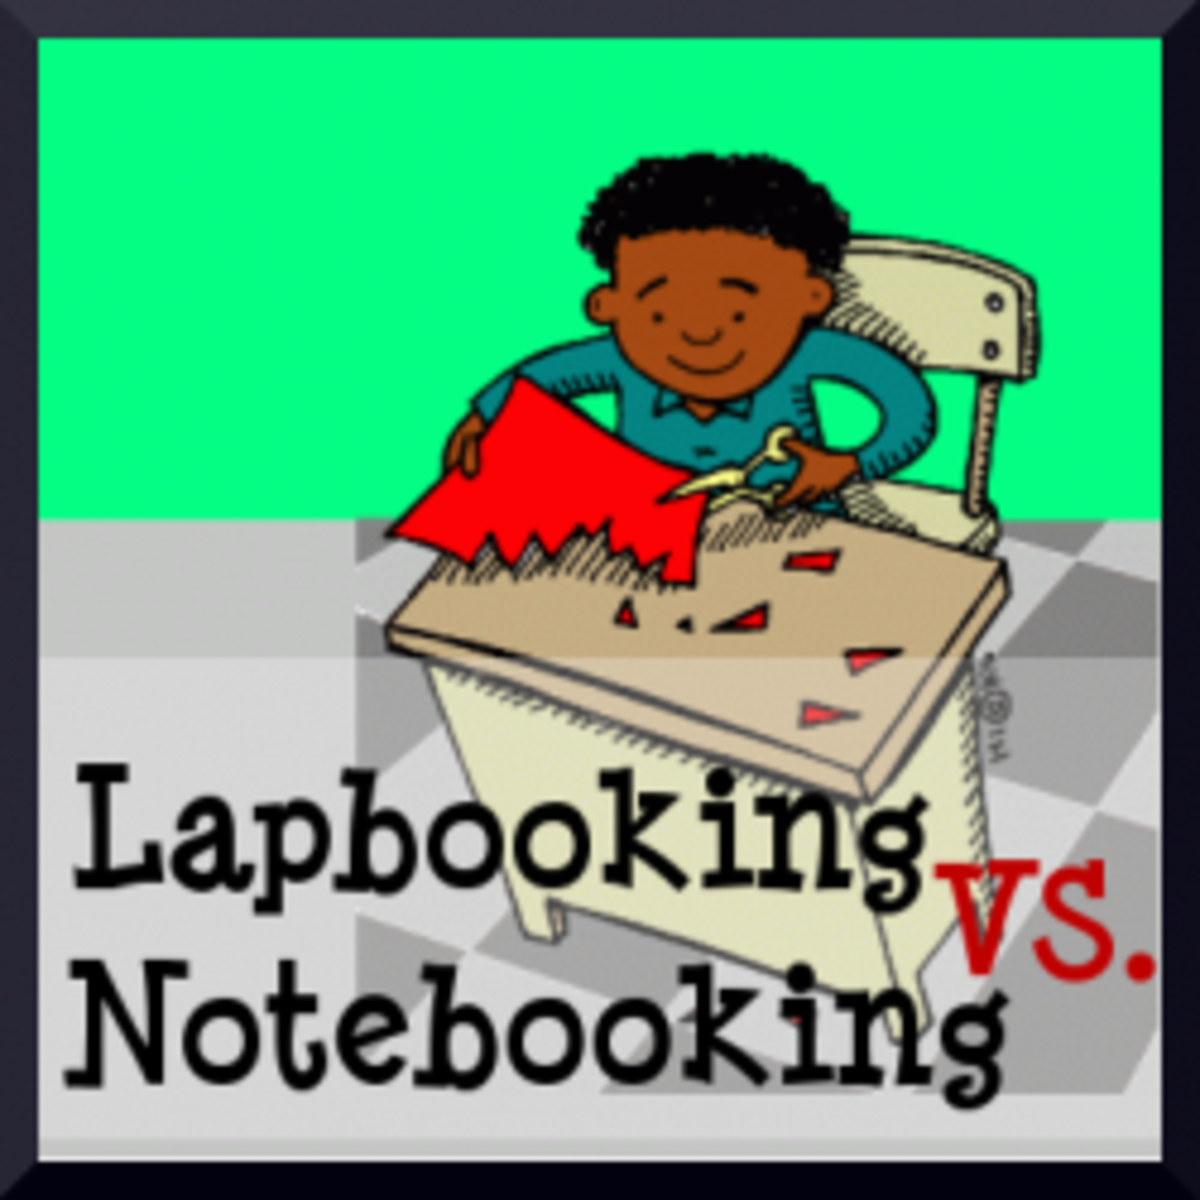 Lapbooking Versus Notebooking